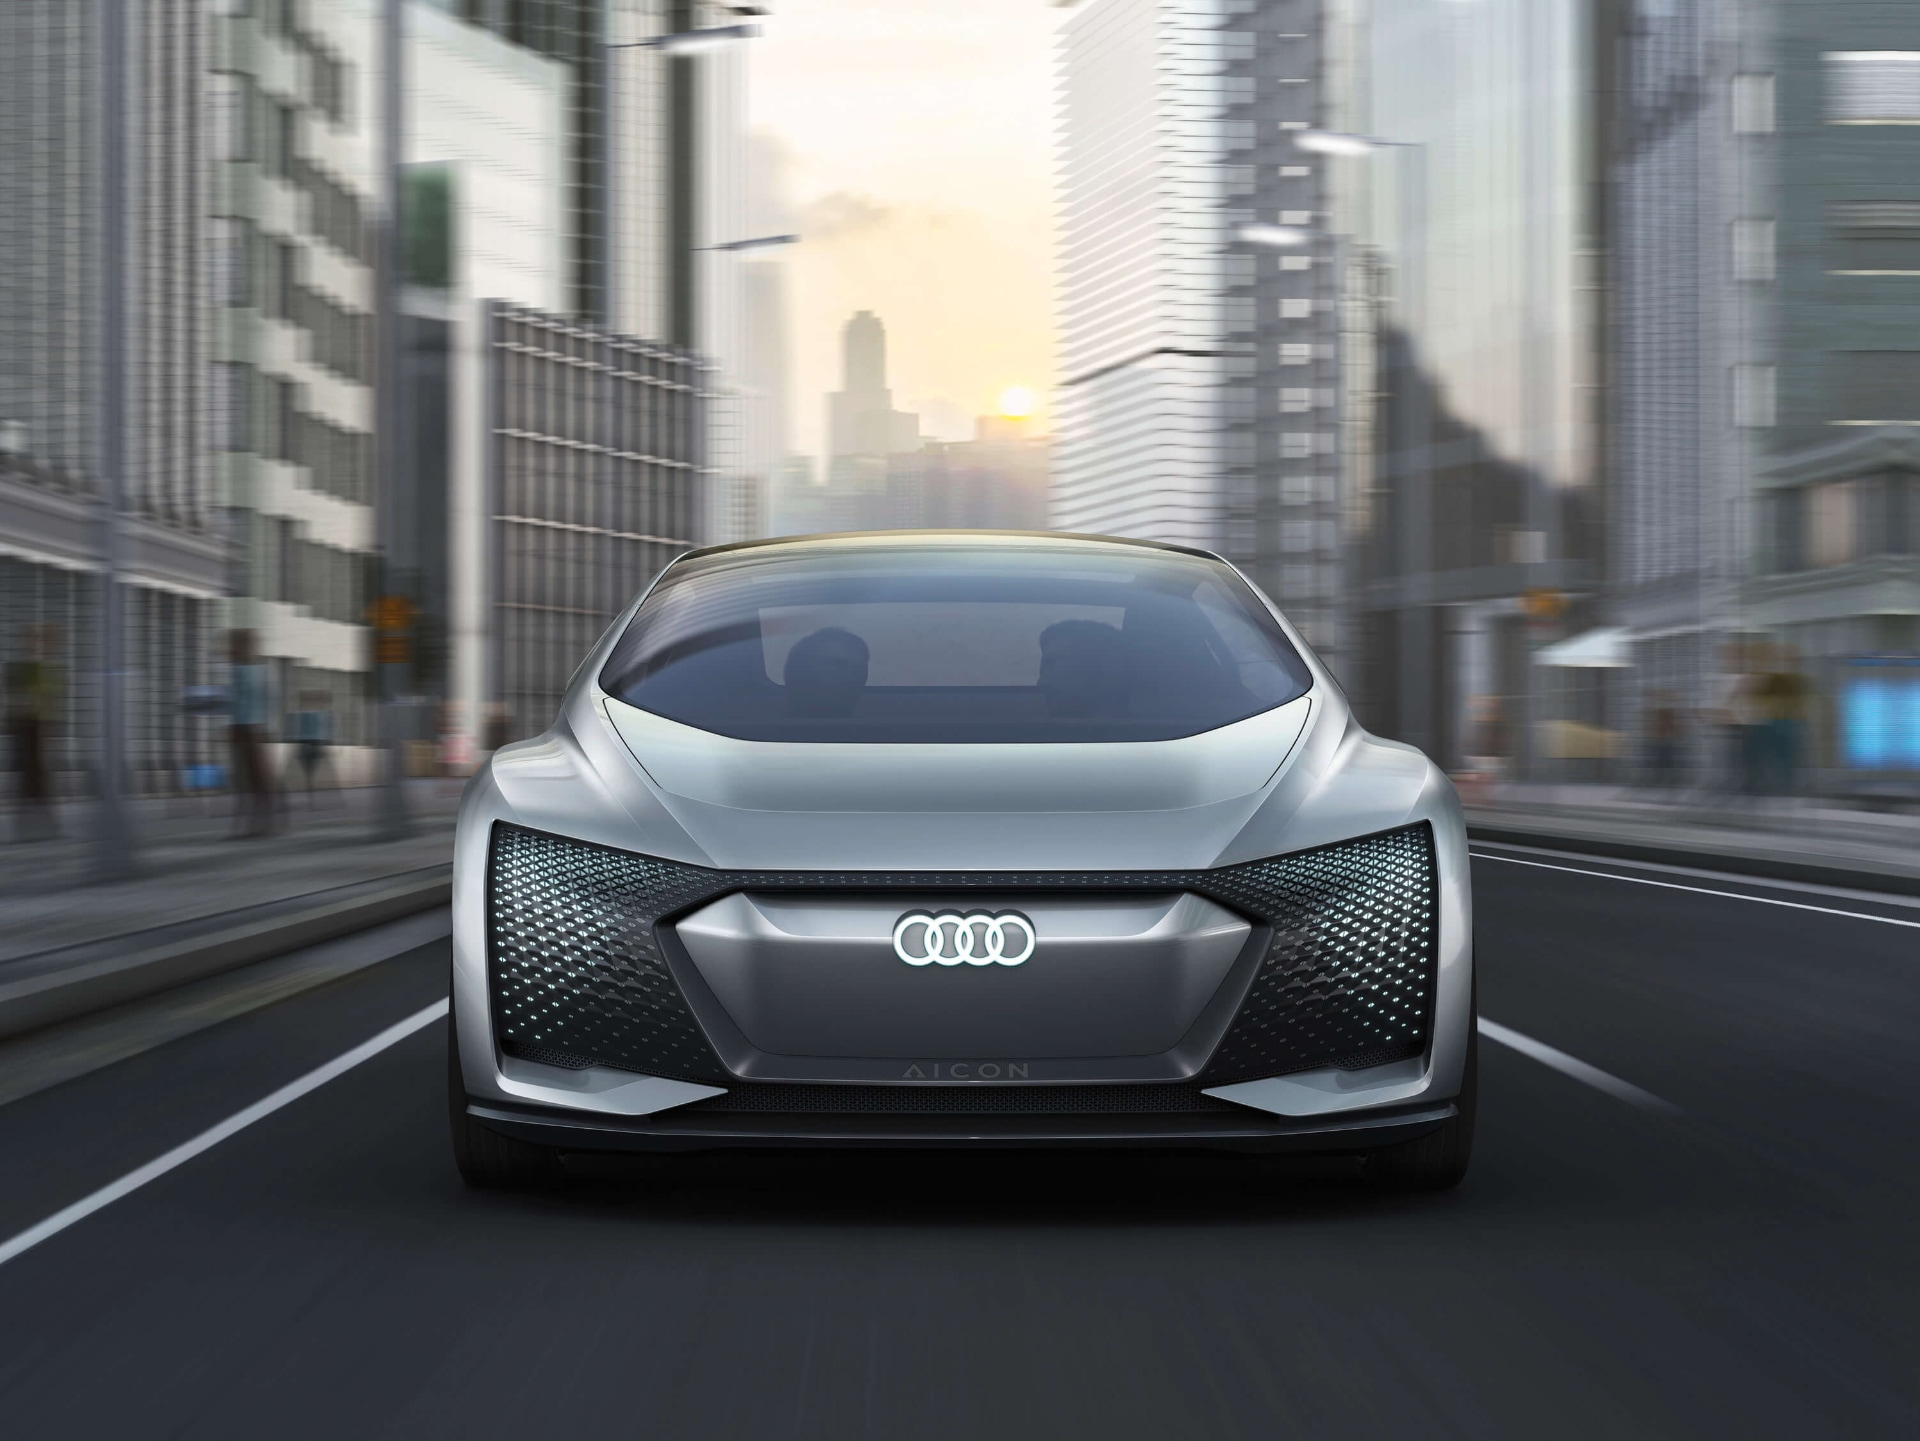 Full steam ahead: the Audi Aicon scoops out all the possibilities of an autonomus luxury car.